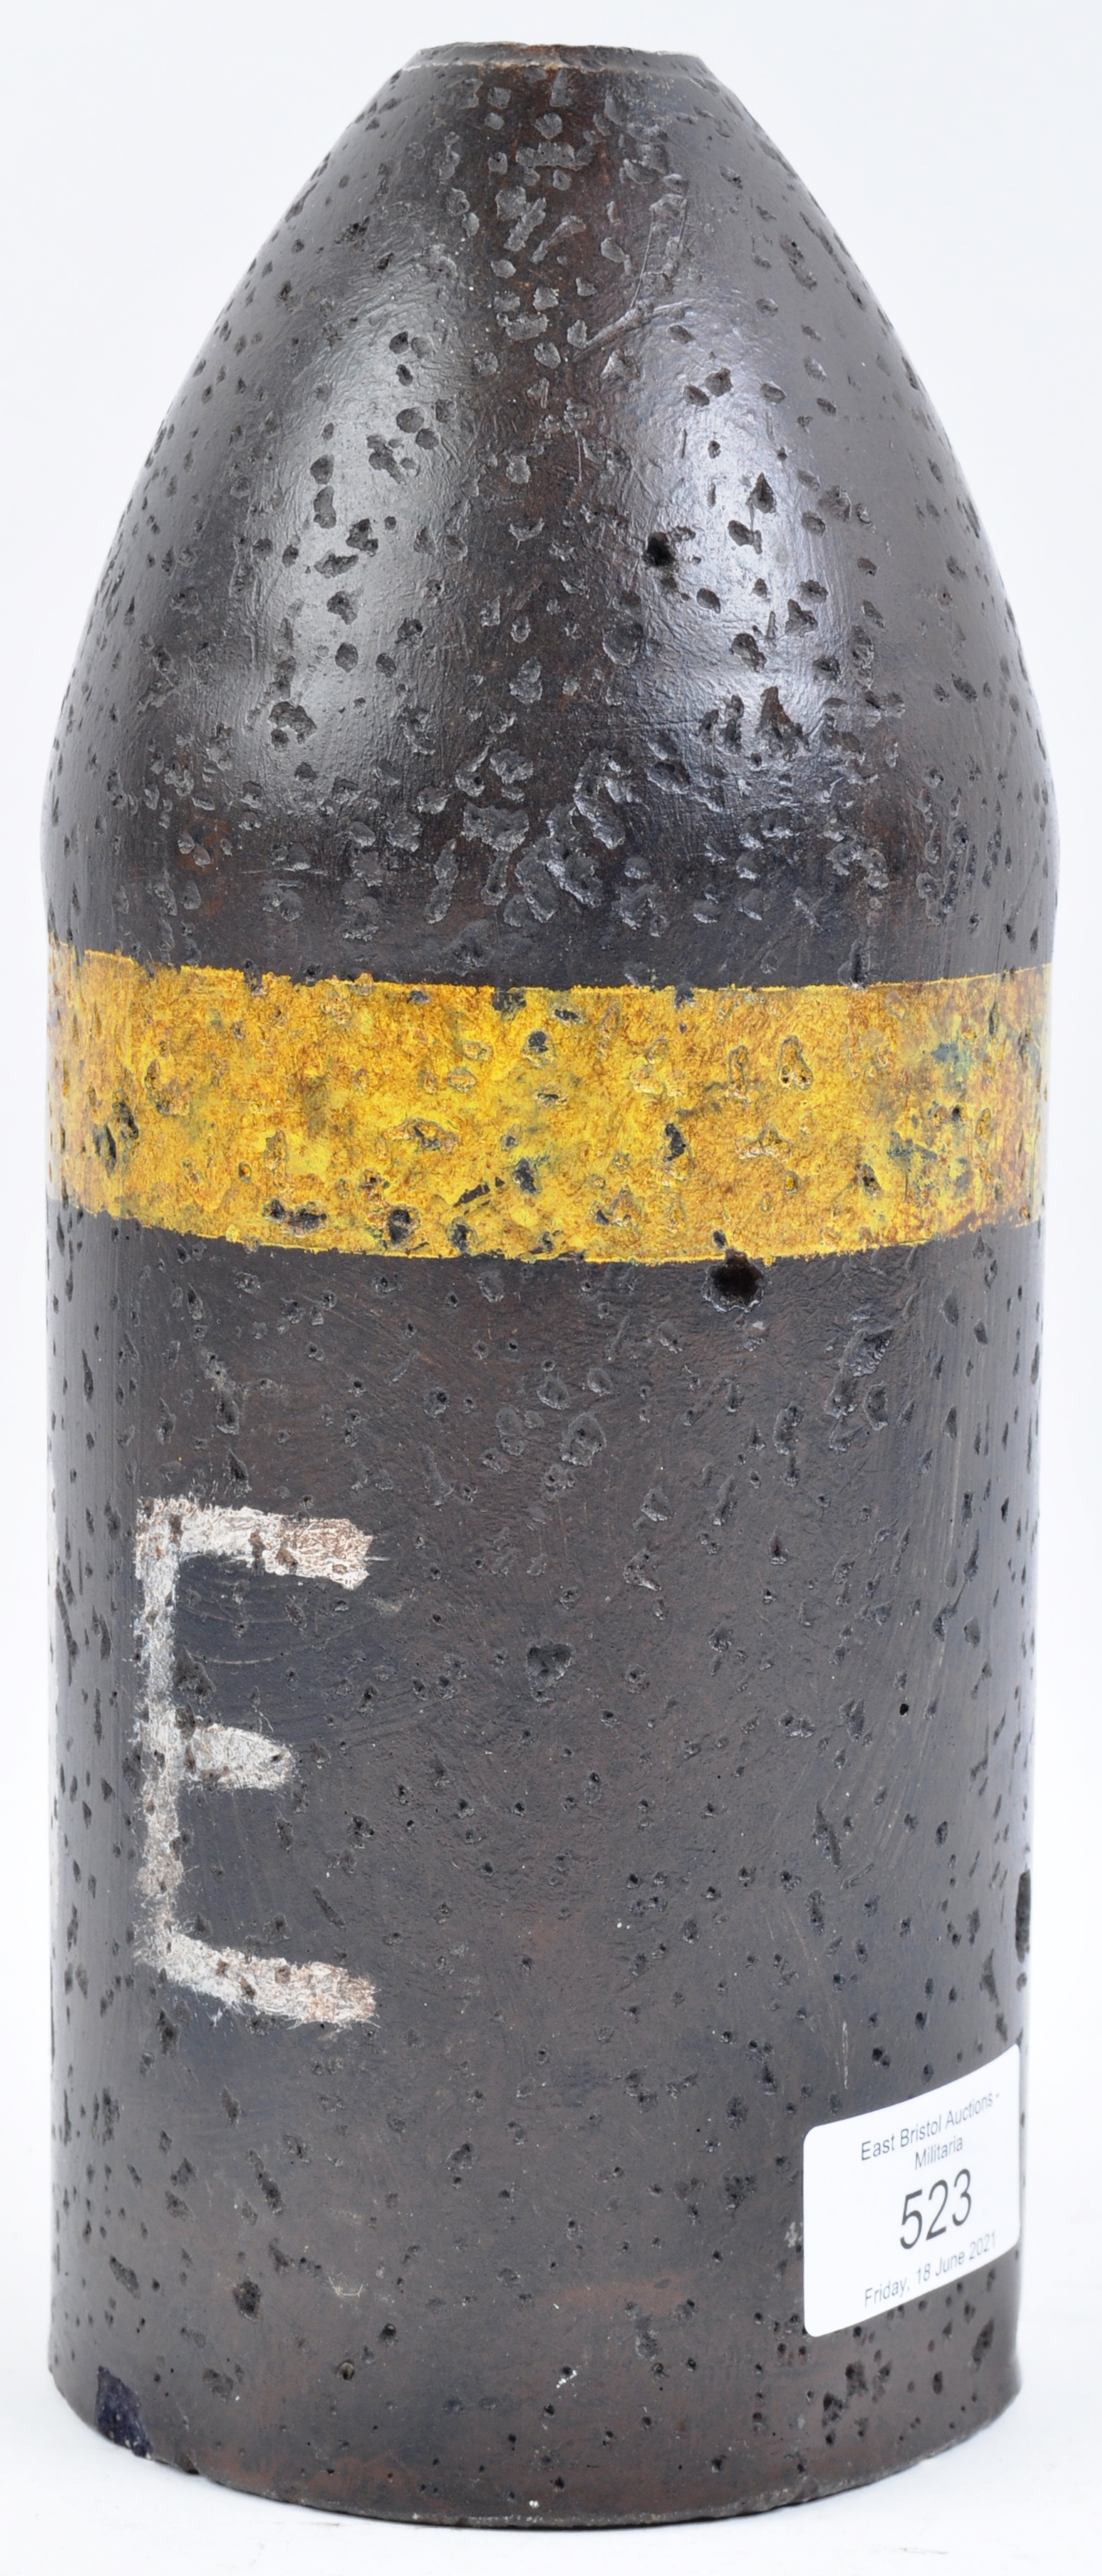 LARGE WWII VINTAGE BRITISH ARMY HIGH EXPLOSIVE PRACTISE ROUND - Image 3 of 5